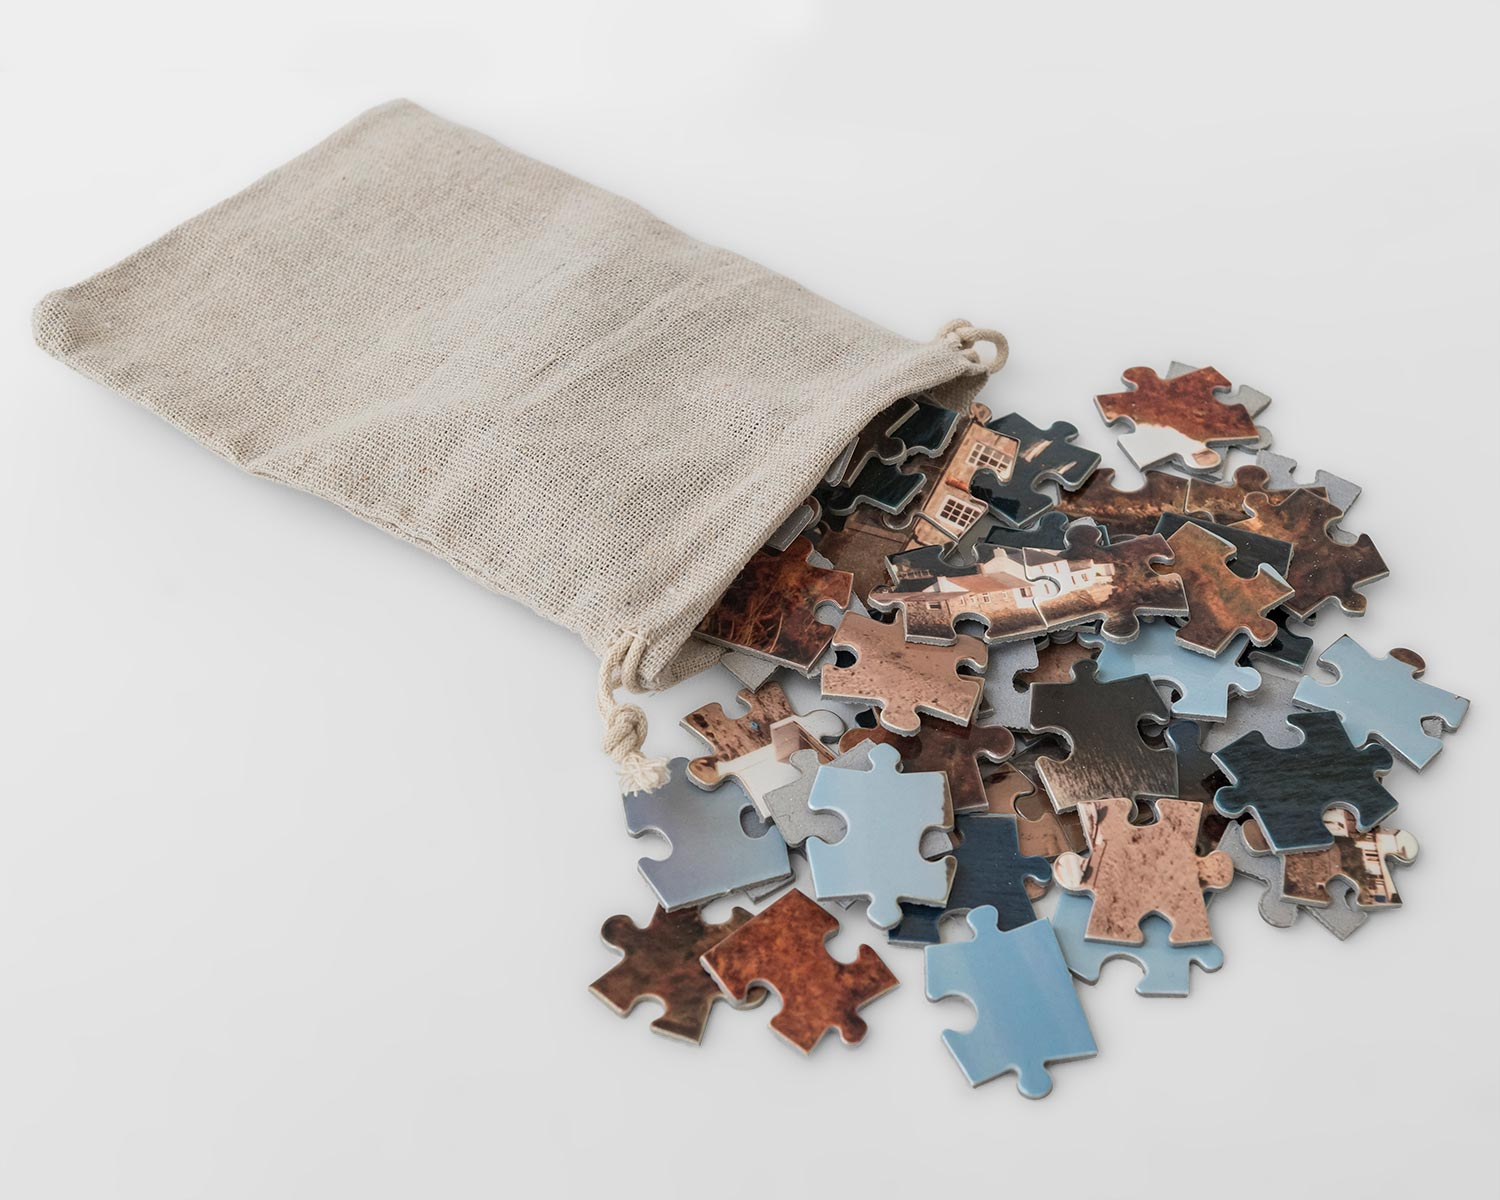 Jigsaw pieces presented in sack